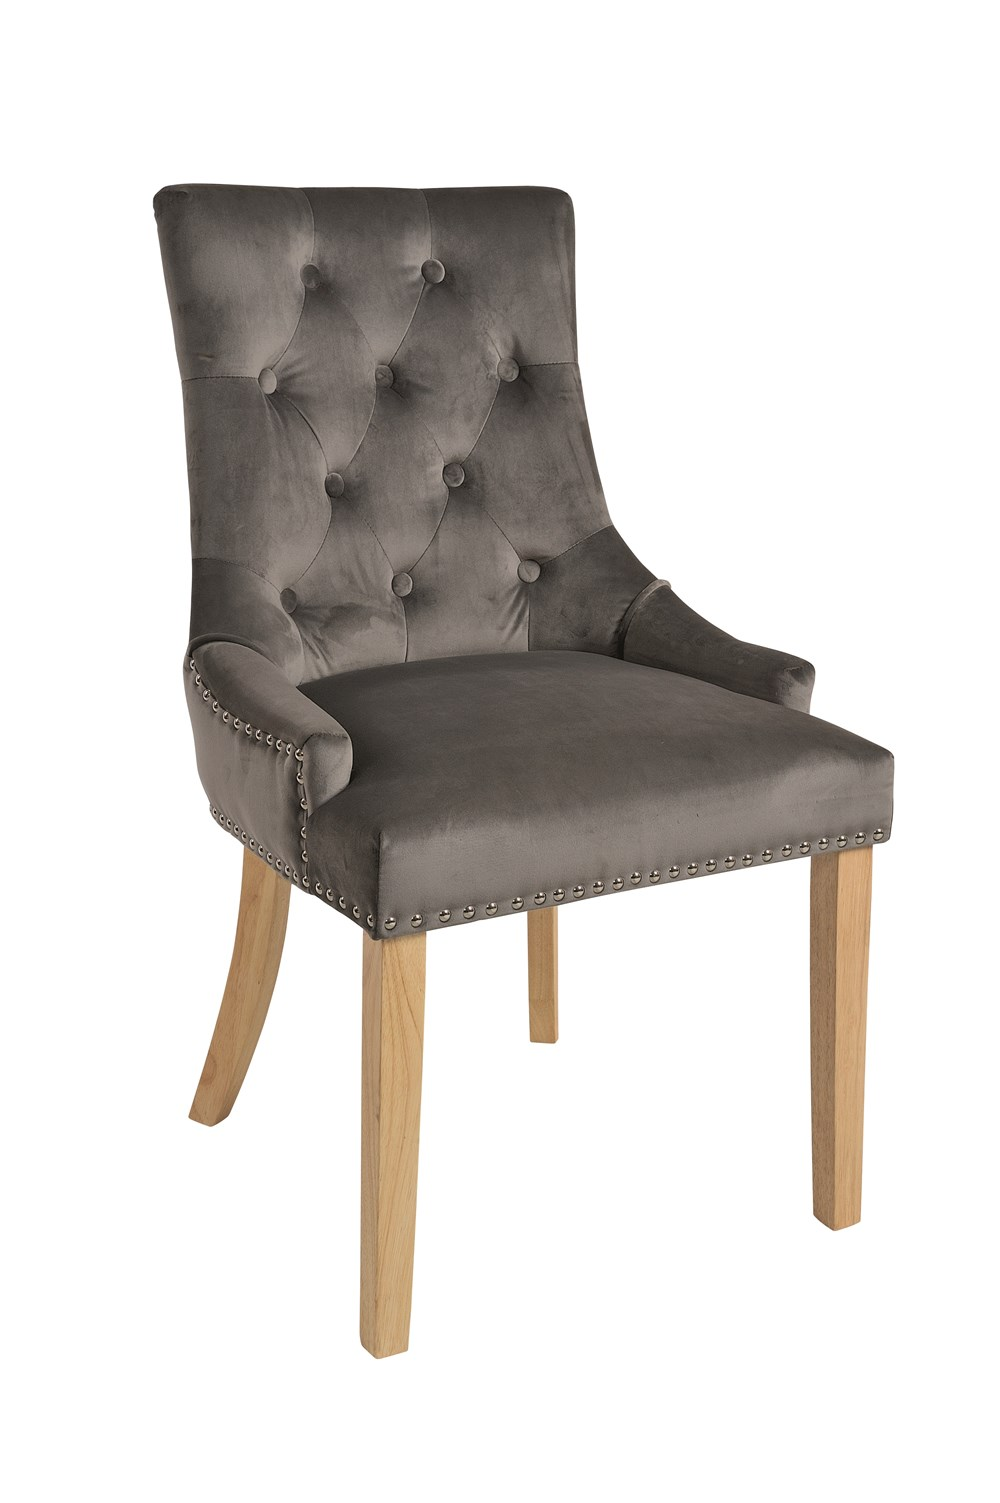 VICKY CHAIR Charcoal Upholstered Chair with Natural Legs